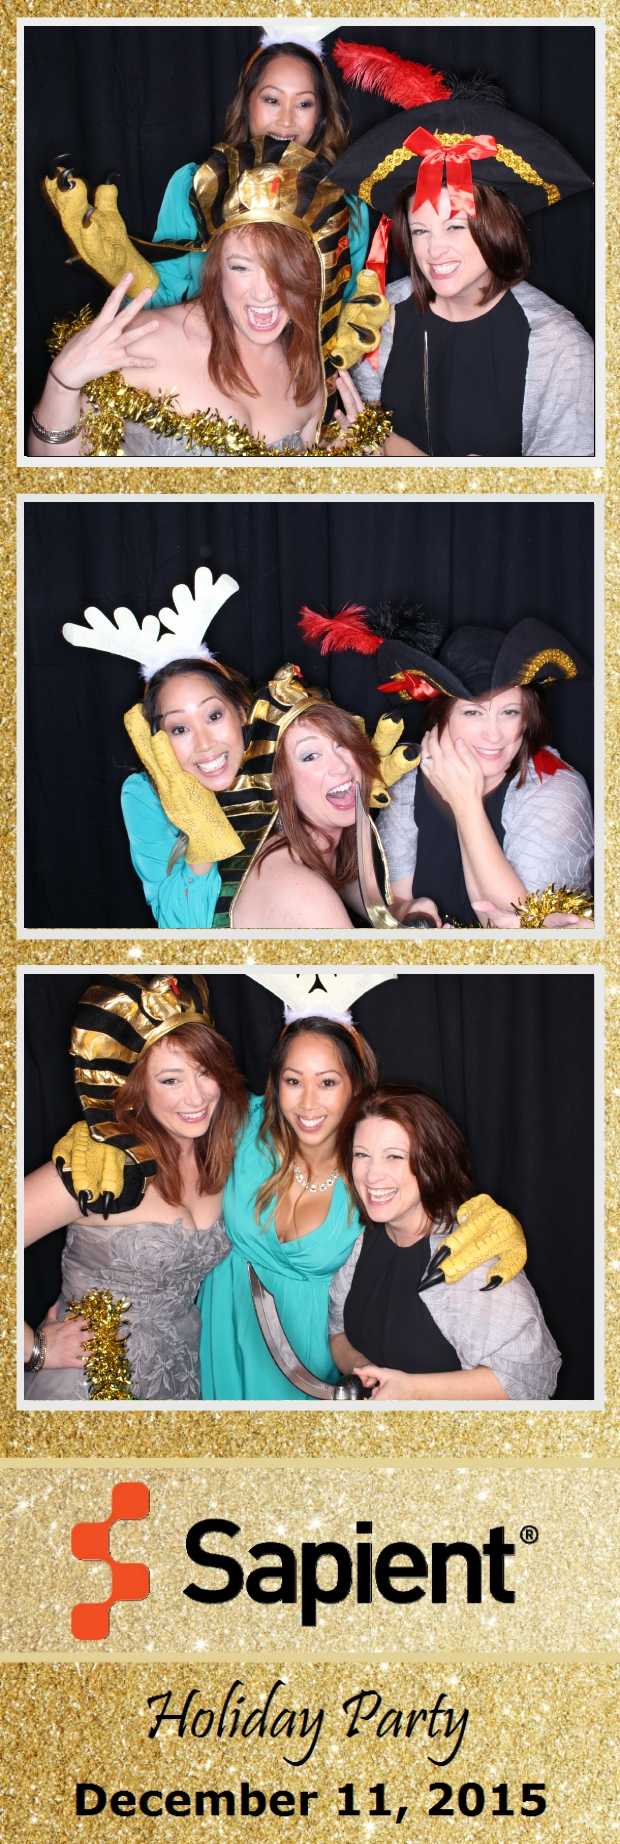 Guest House Events Photo Booth Sapient Holiday Party (26).jpg